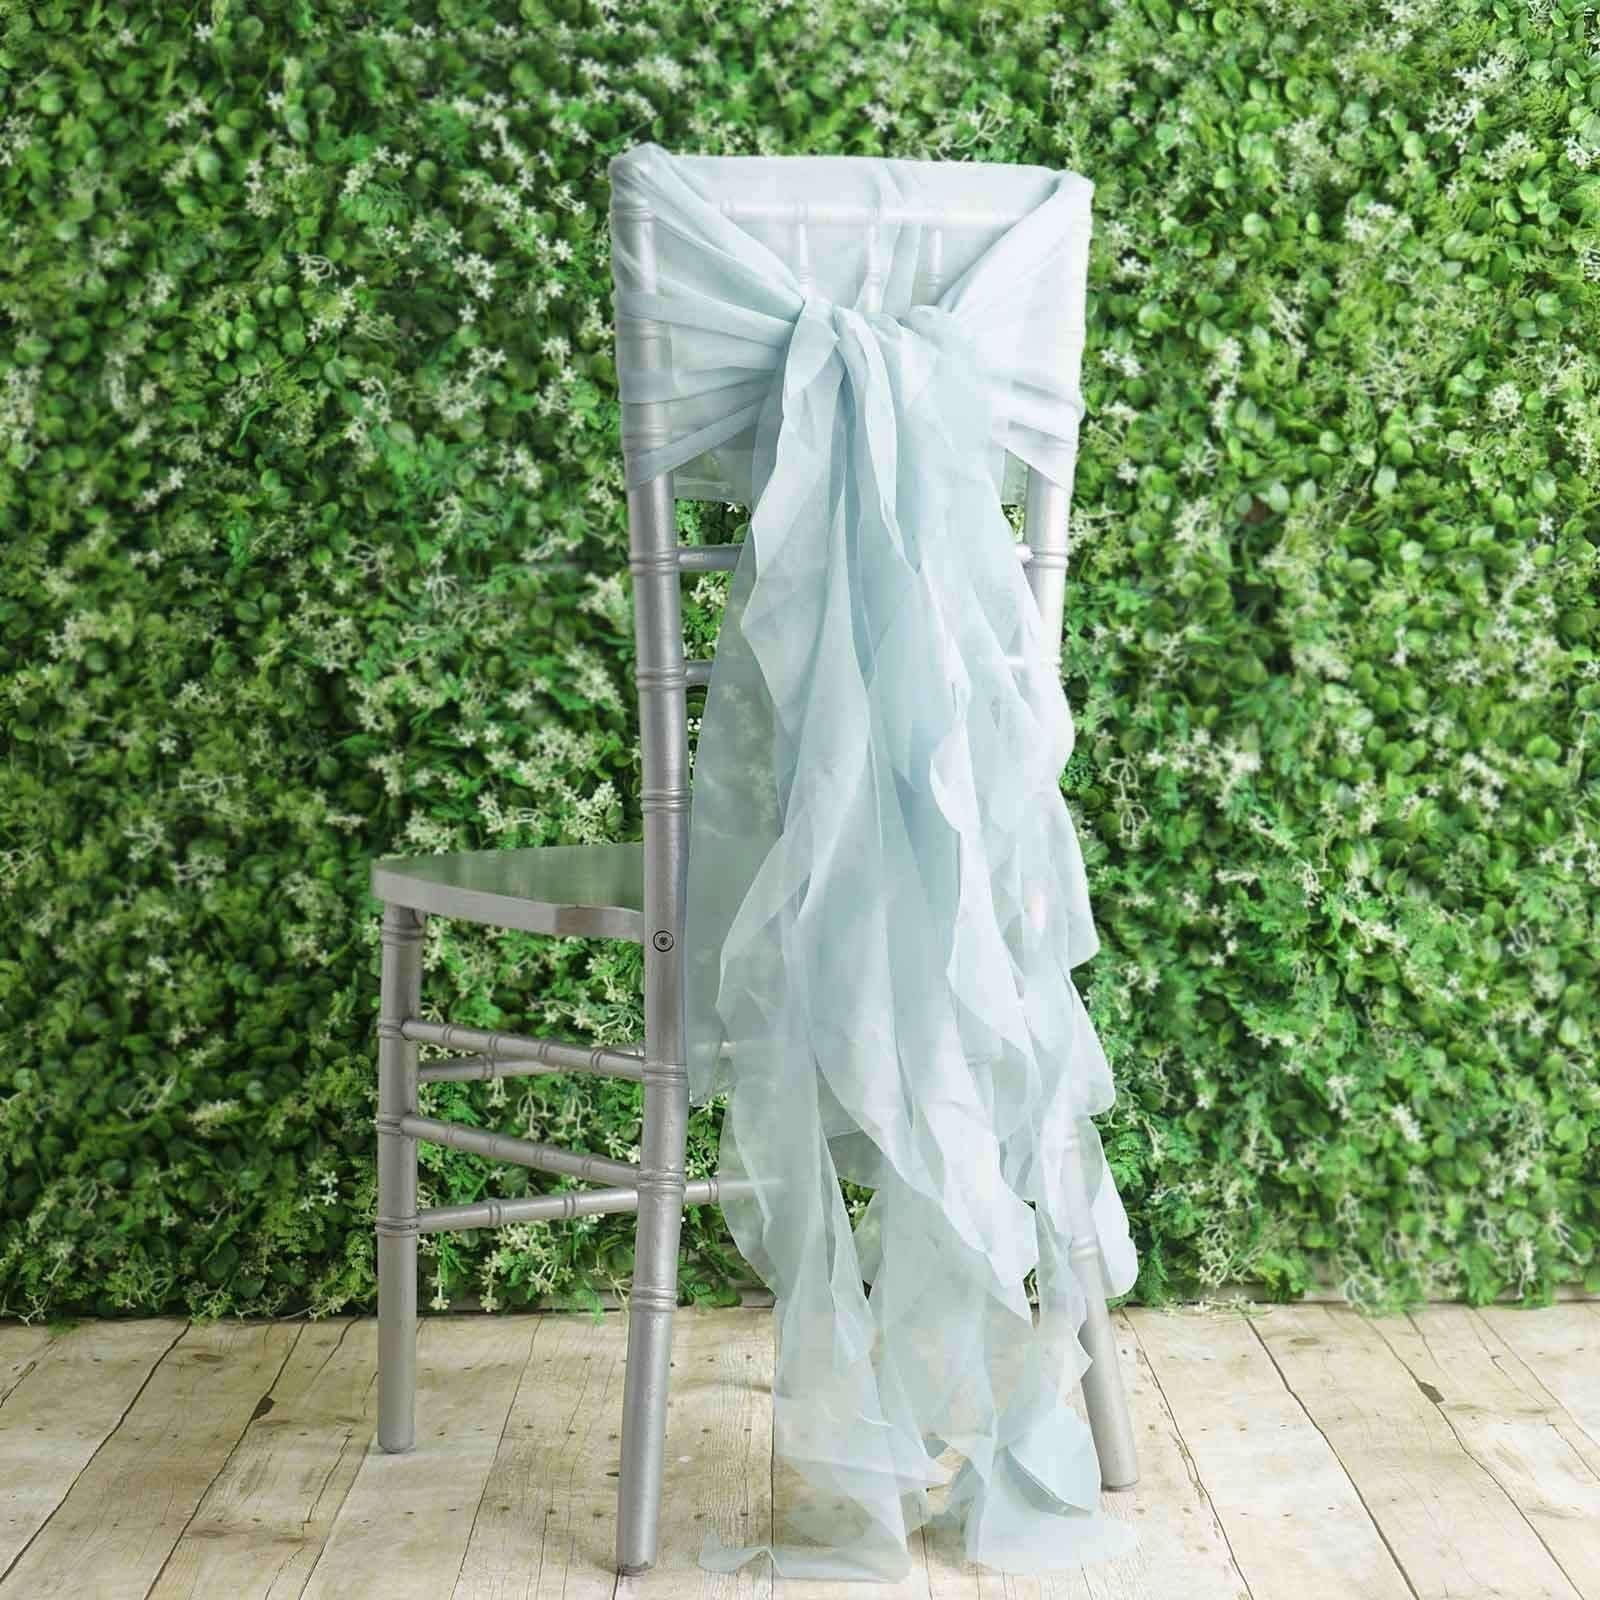 1 Set Ice Blue Chiffon Hoods With Curly Willow Chiffon Chair